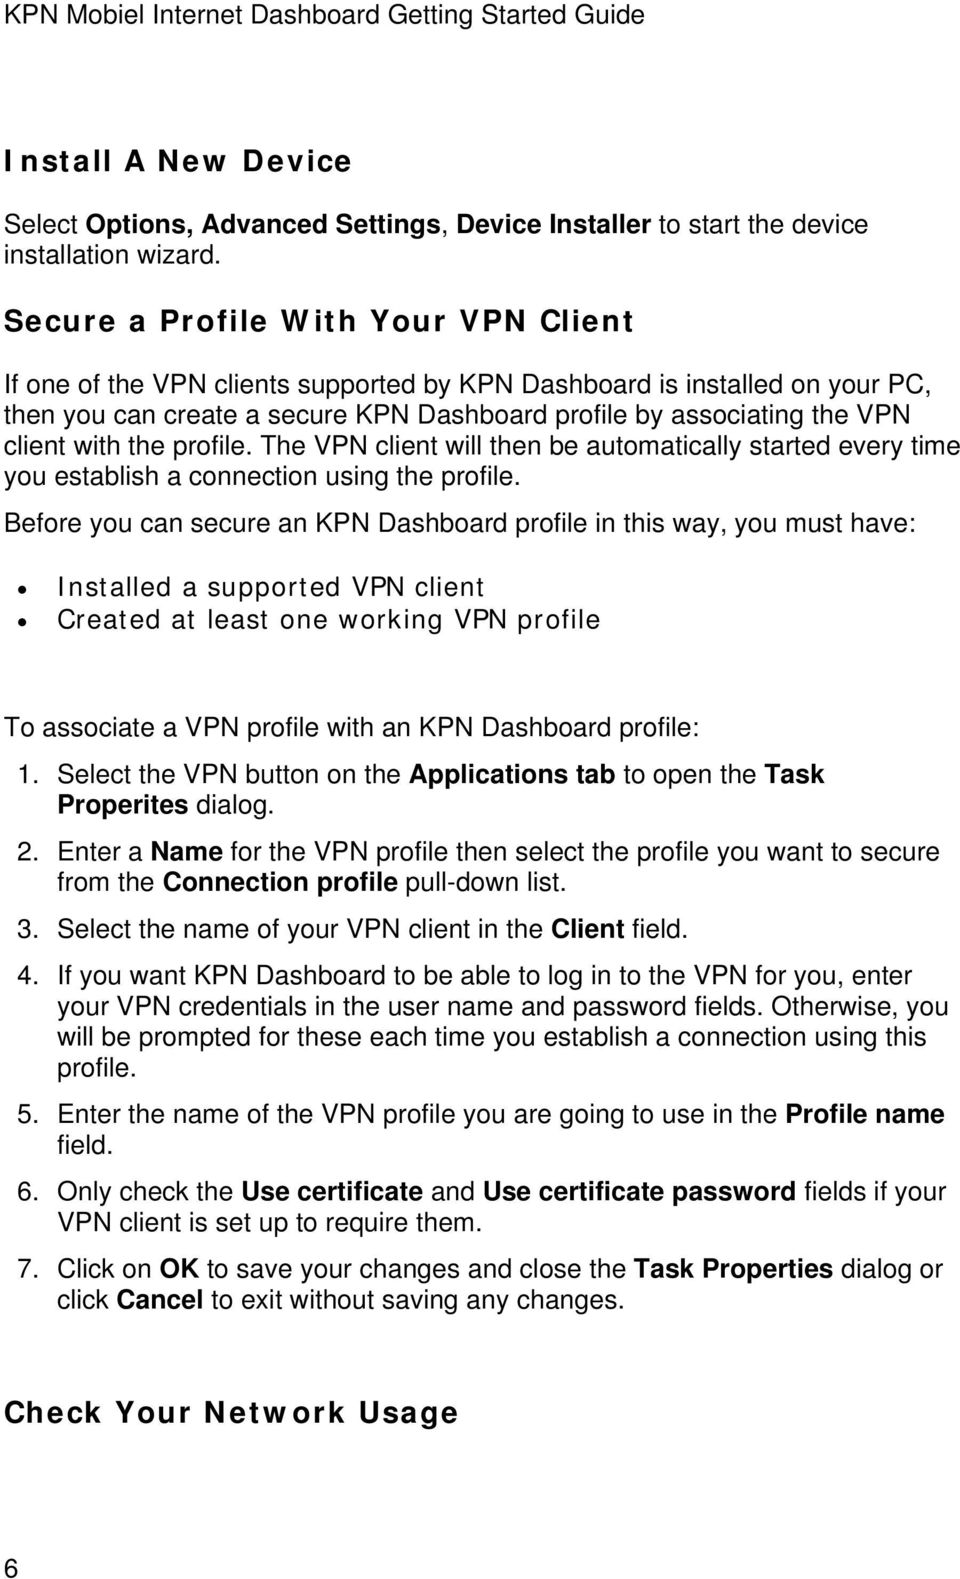 with the profile. The VPN client will then be automatically started every time you establish a connection using the profile.